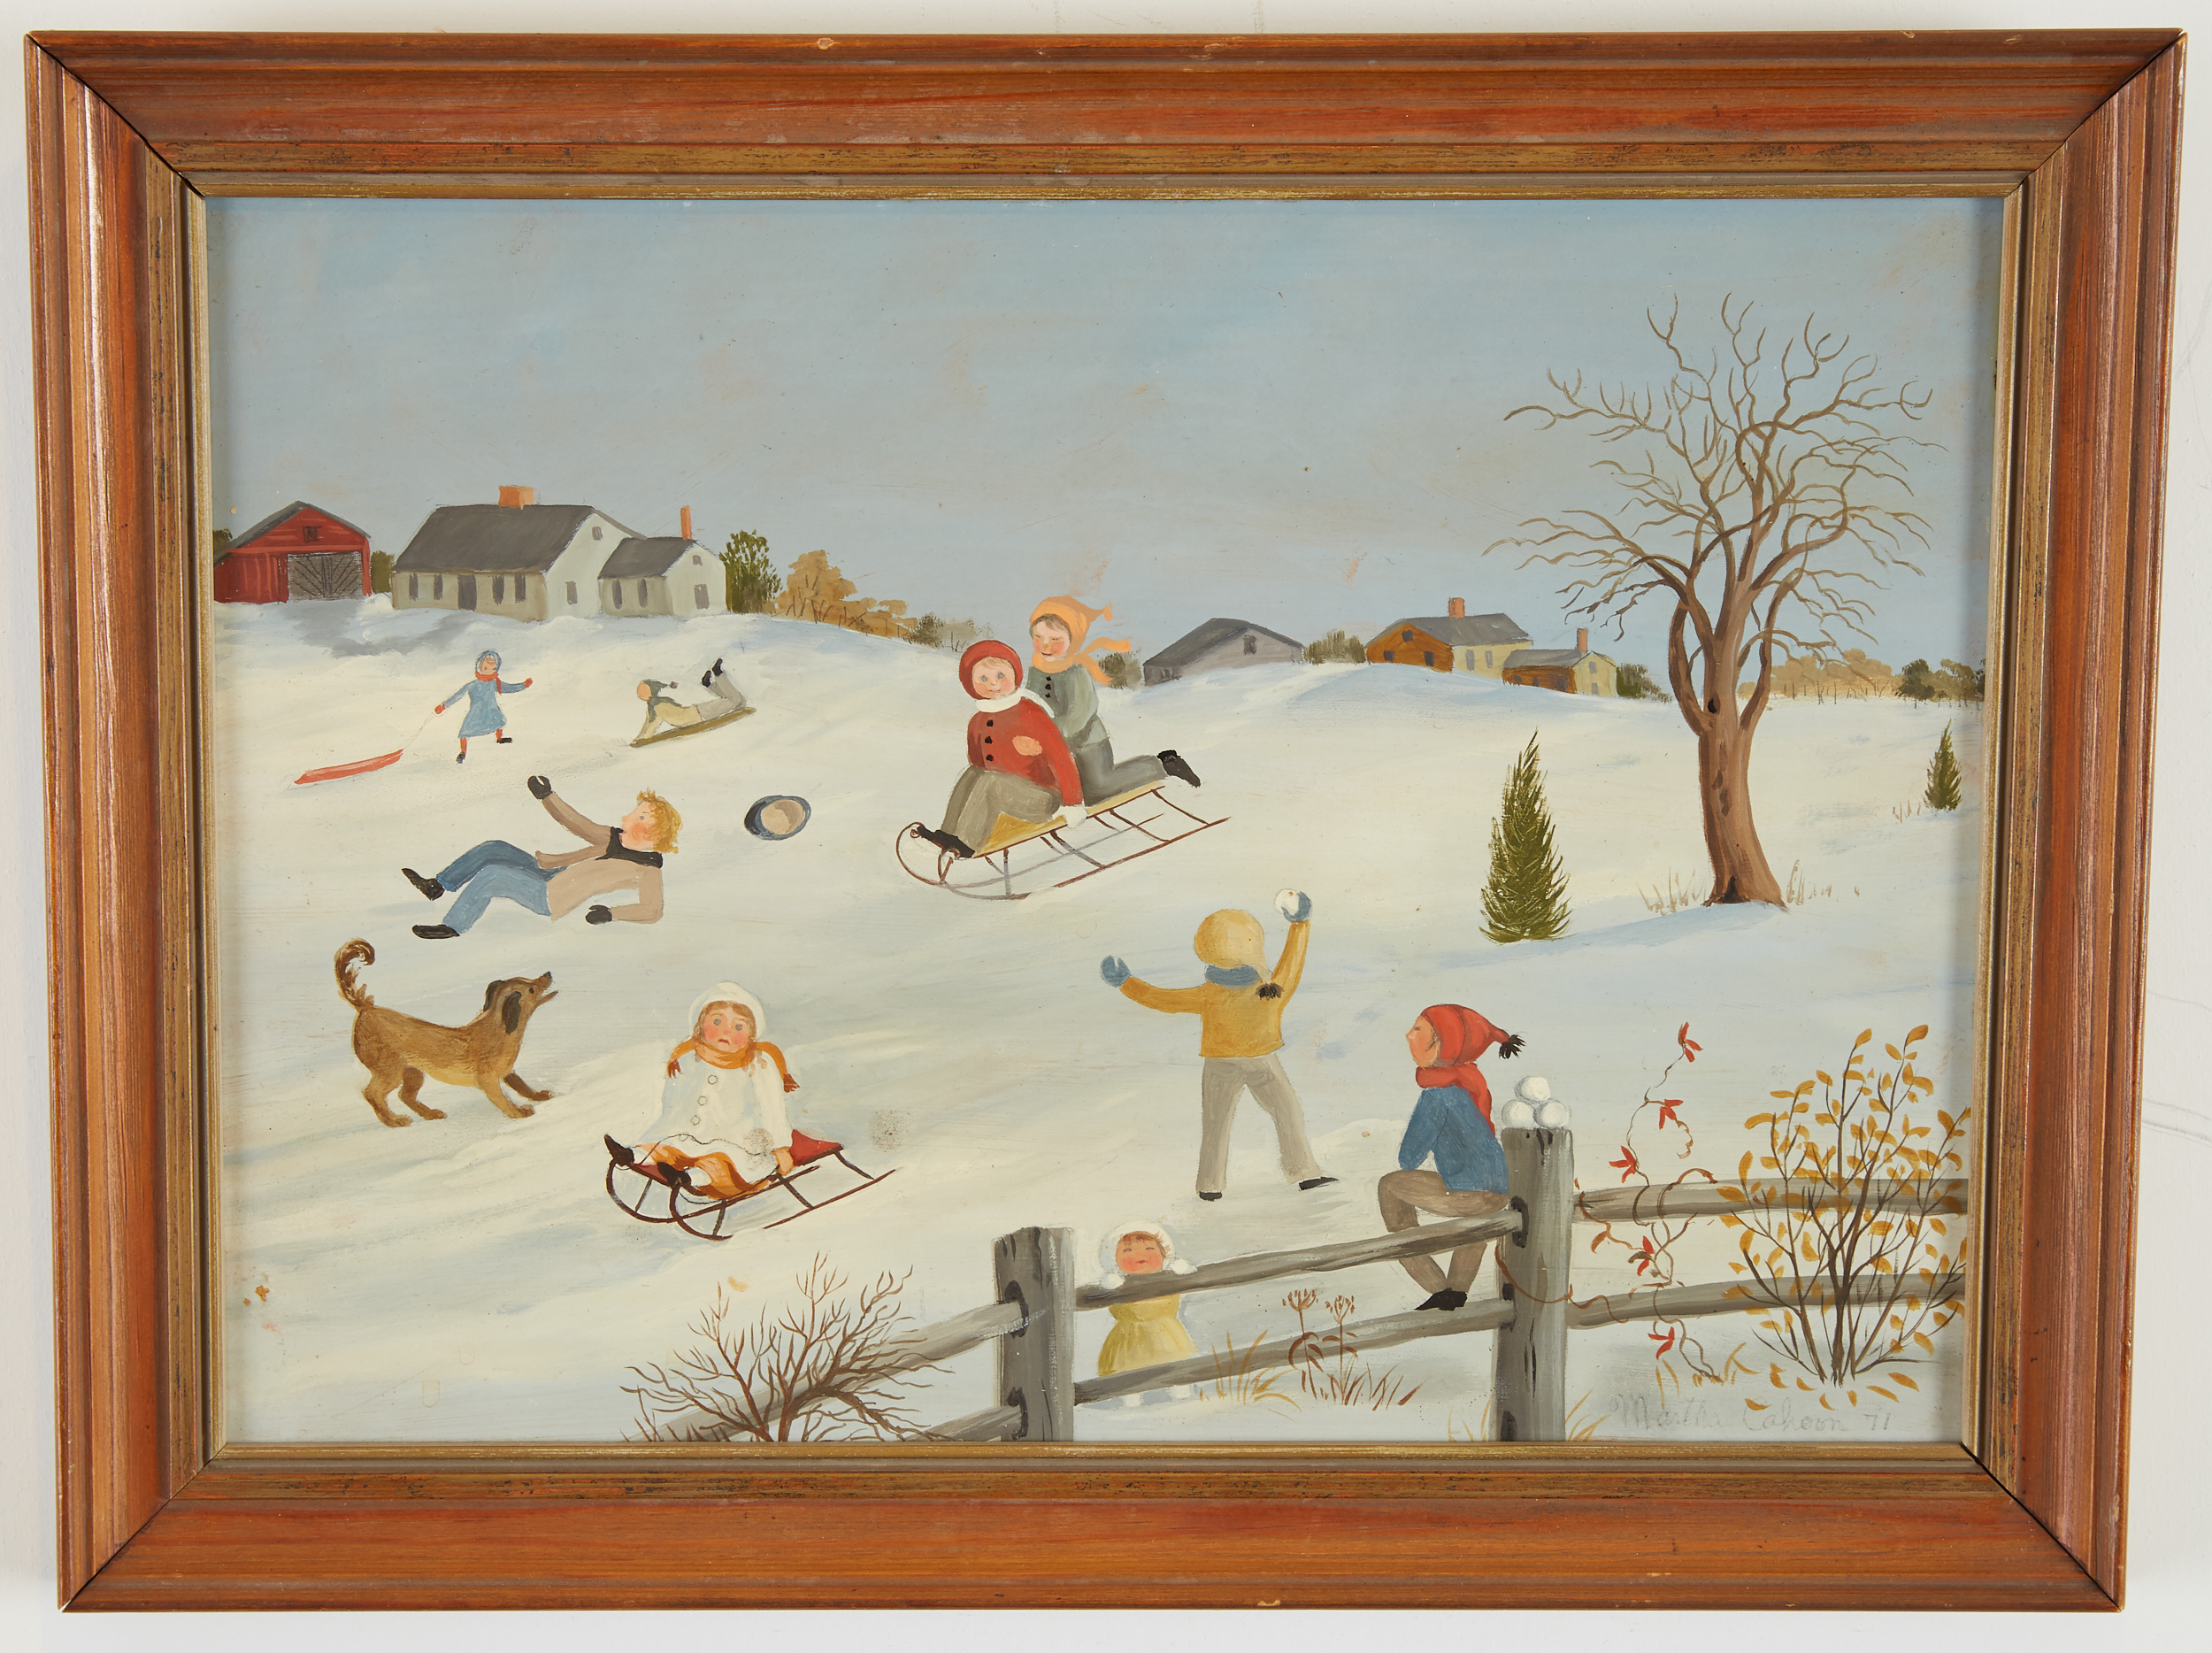 Lot 34 - Martha Cahoon Winter Coasting Oil on Masonite